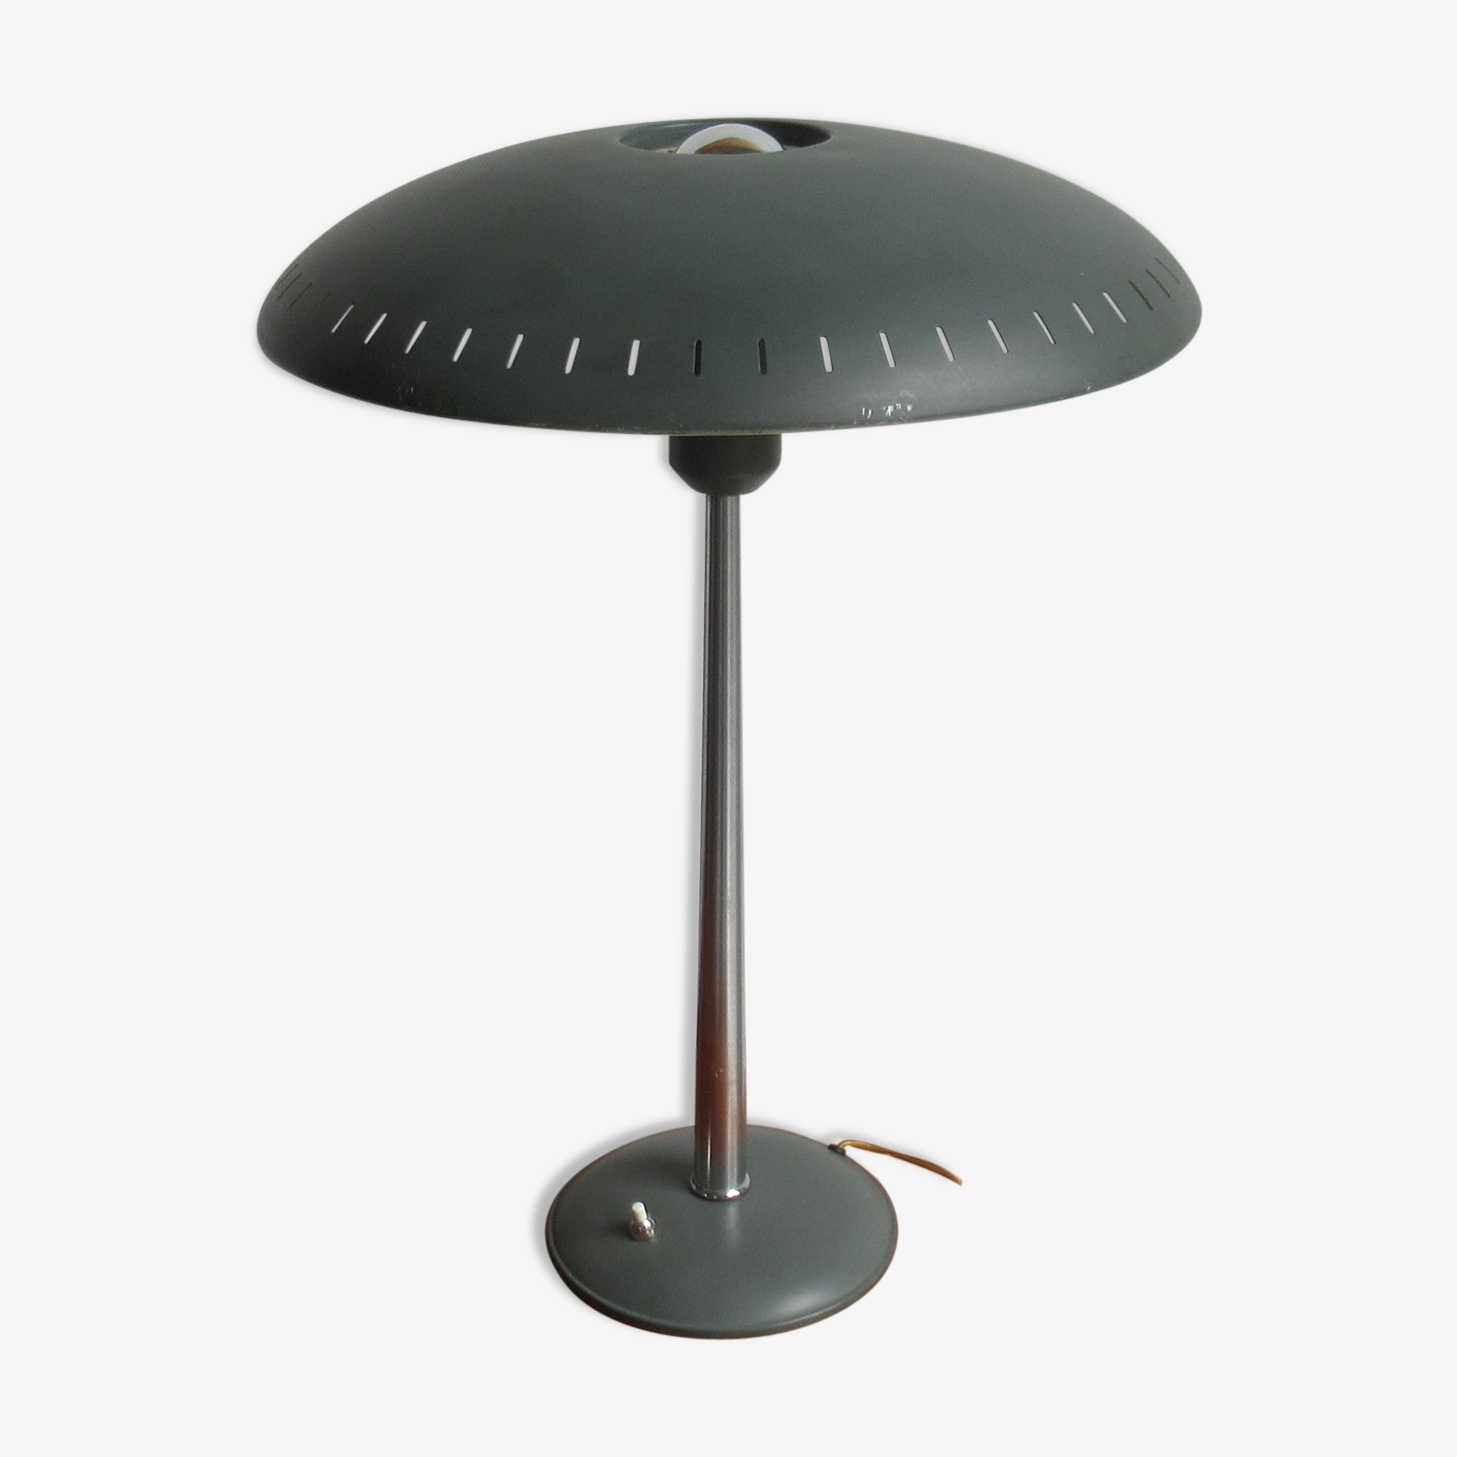 "Lampe de table ""Evoluon"" - Louis C. Kalff pour Philips"